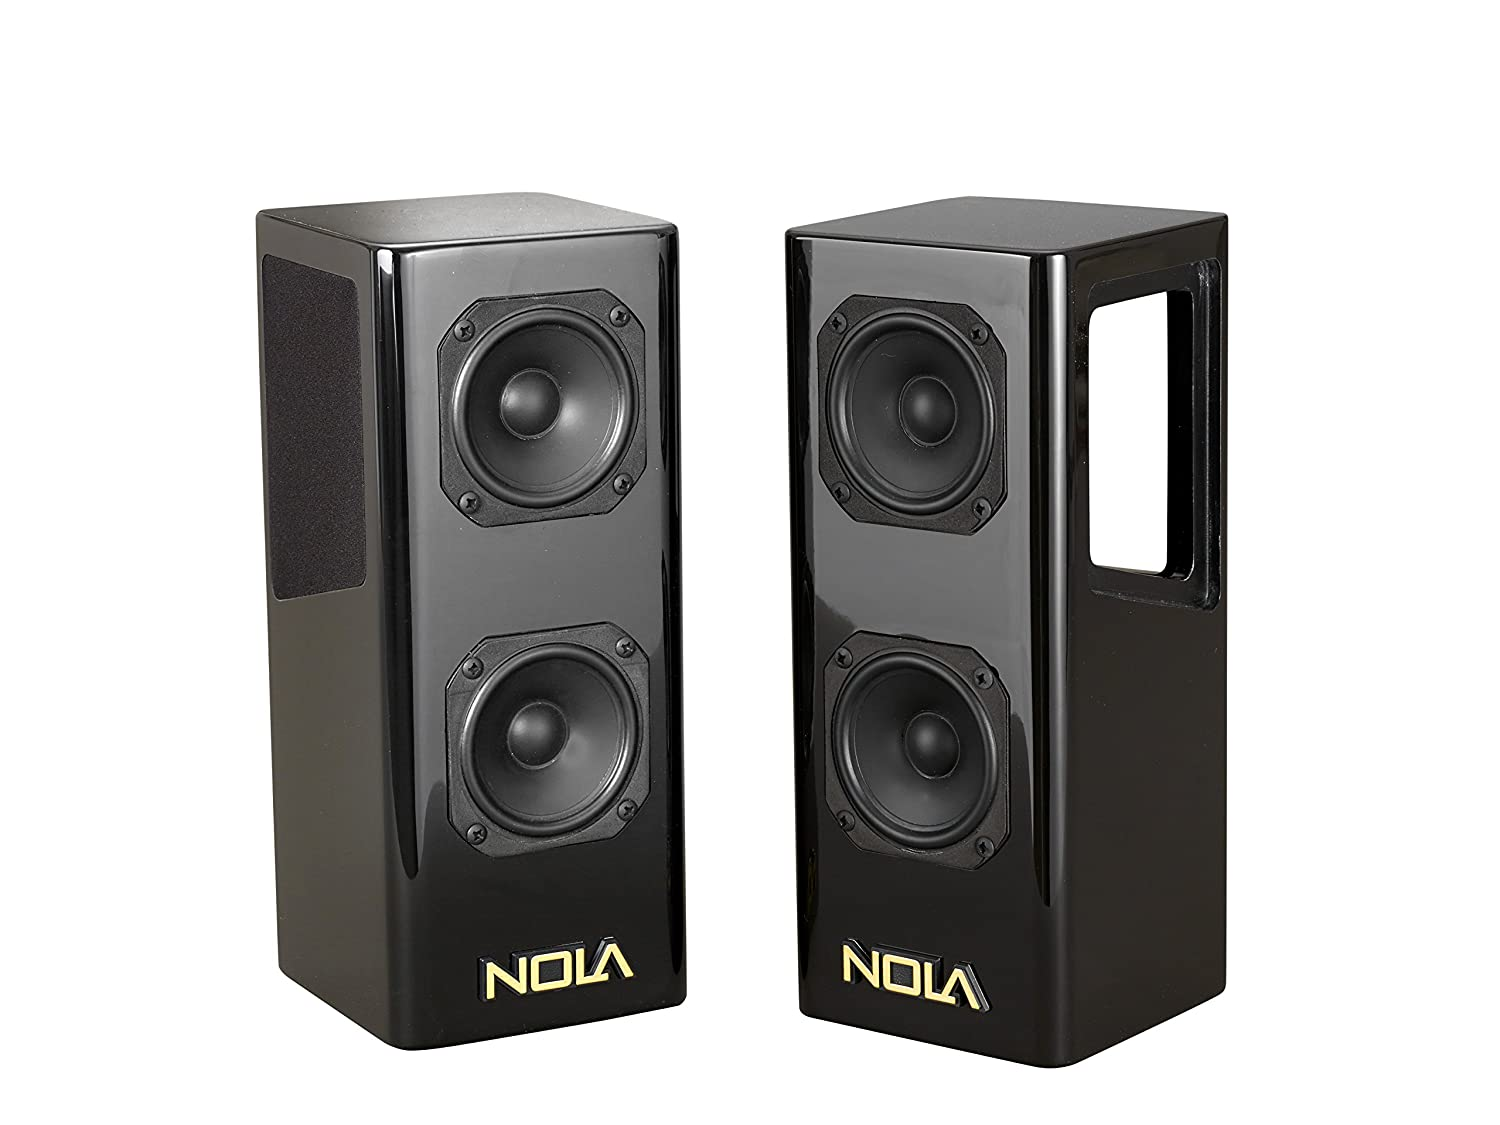 want recommendations for small 2 way speakers and powered sub